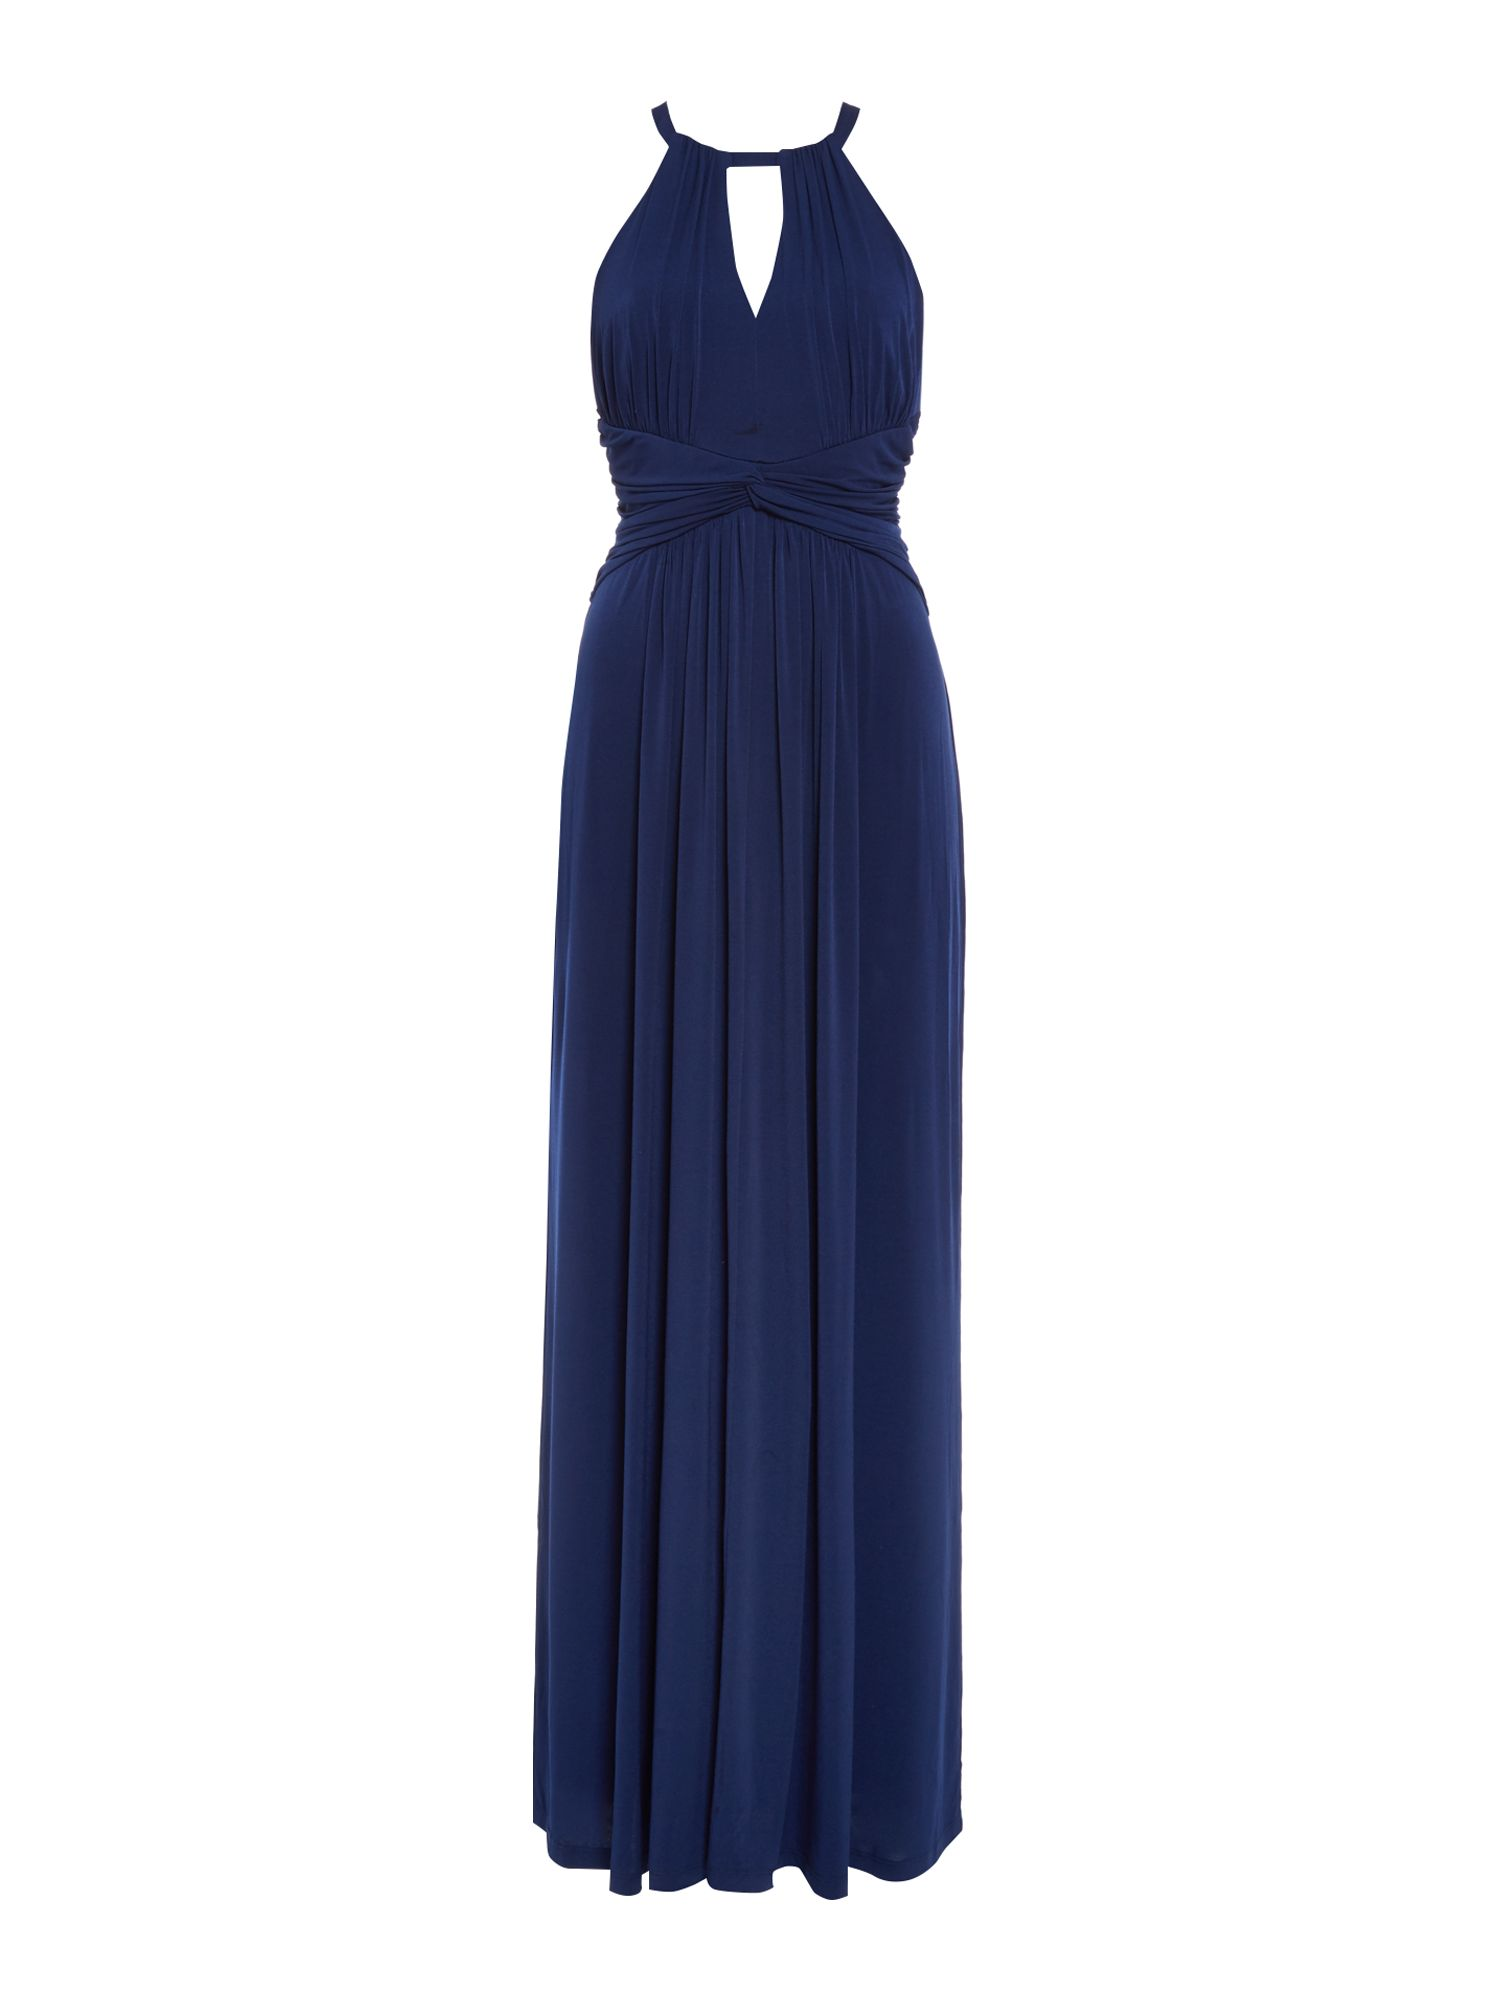 ISSA Ella Halter Maxi Dress, Blue